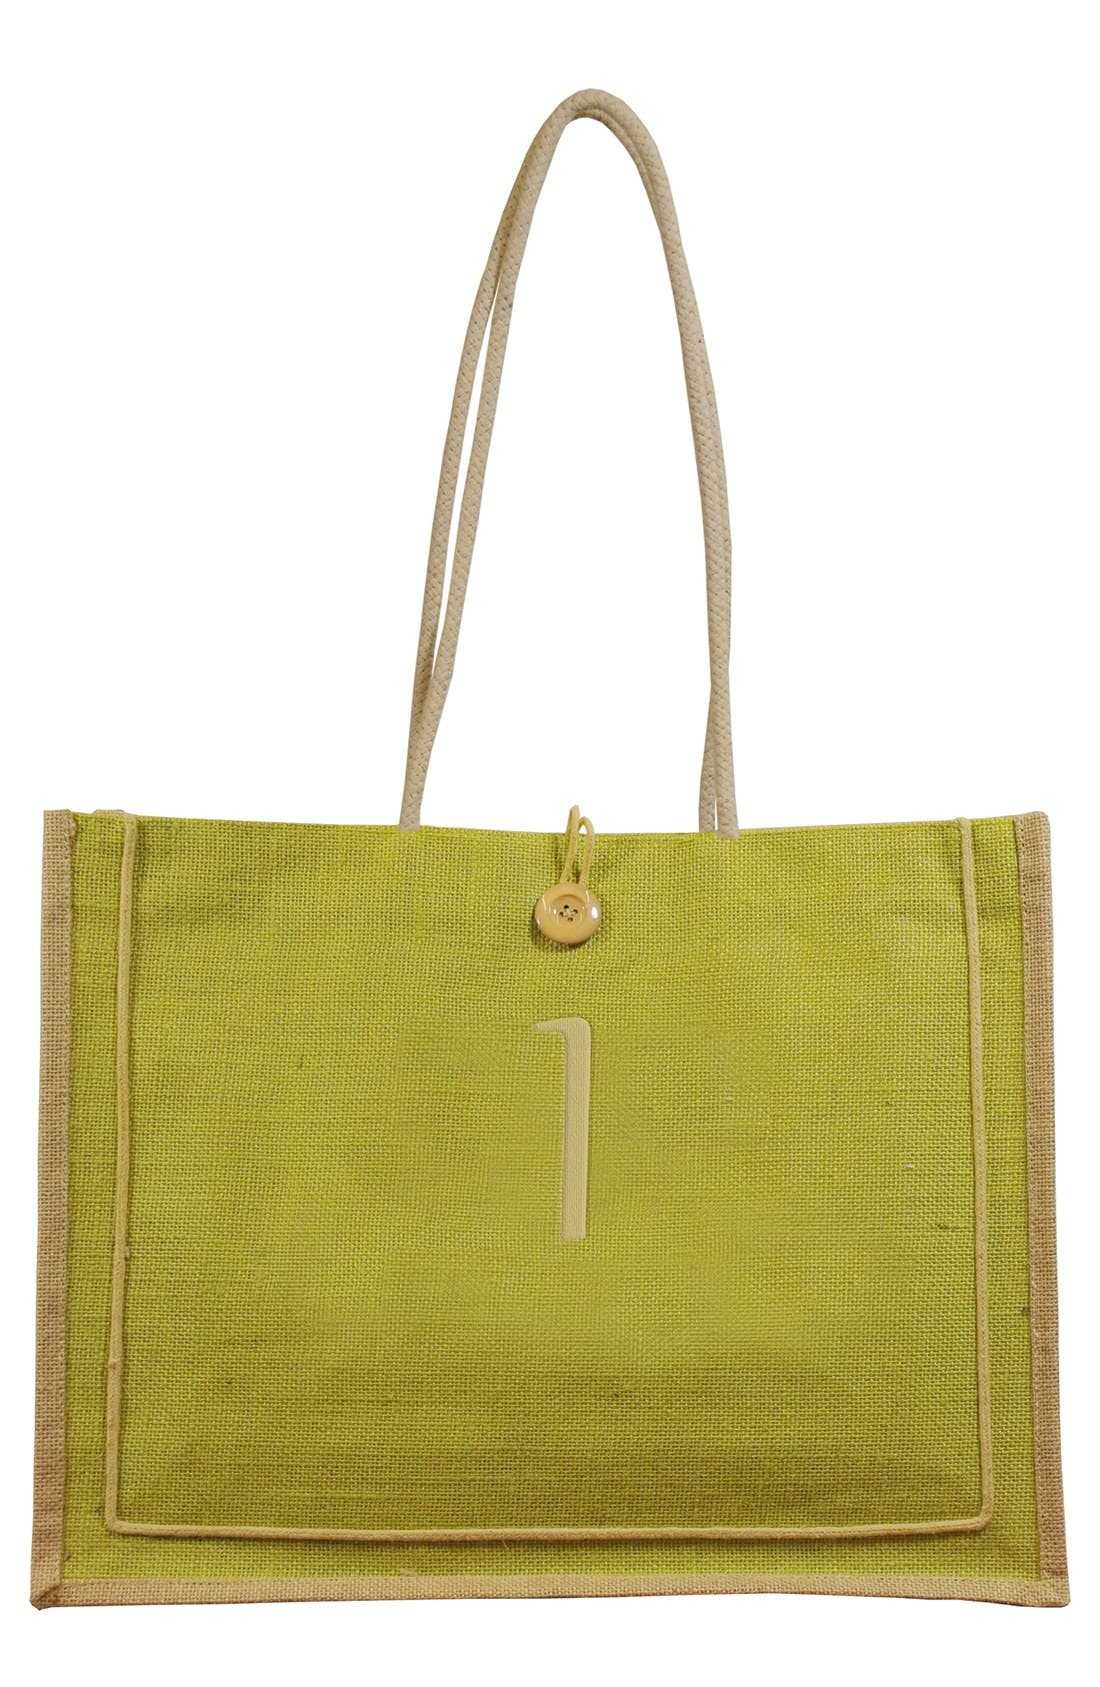 CATHY'S CONCEPTS 'Newport' Monogrammed Jute Tote